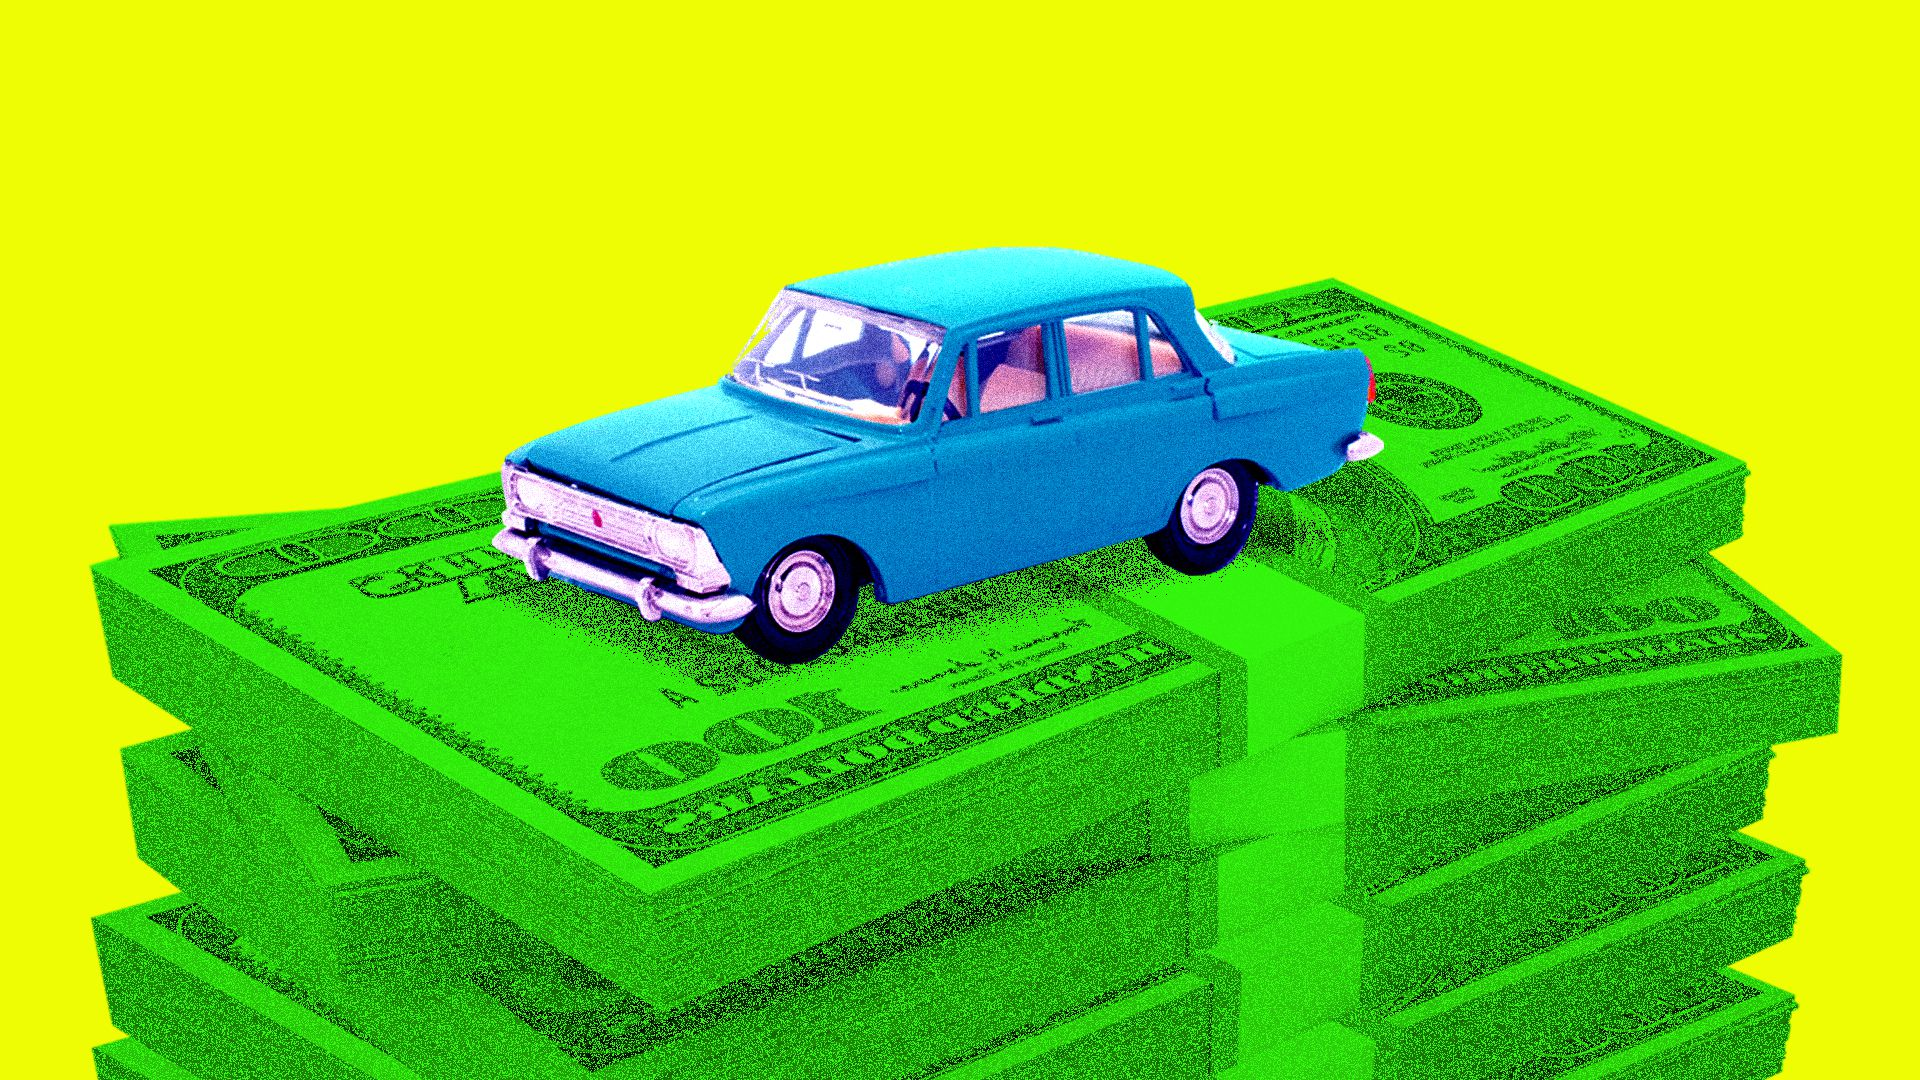 Illustration of car on top of stack of money